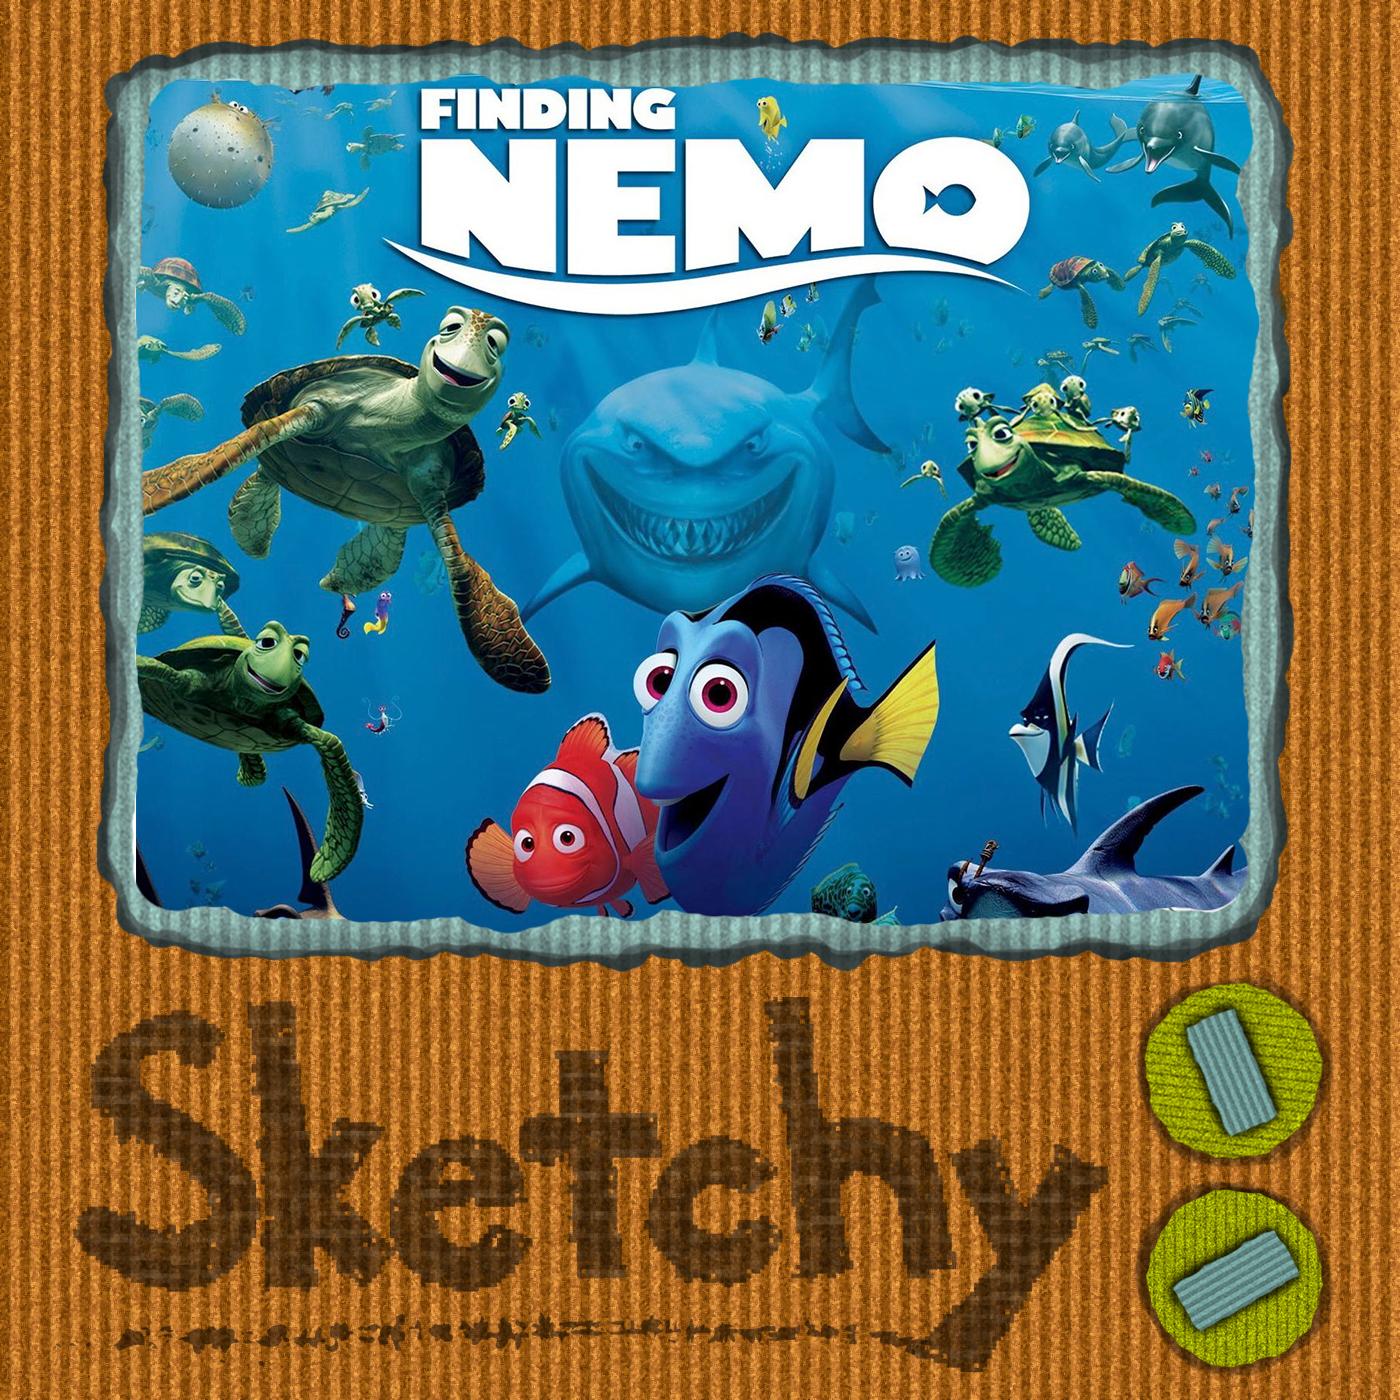 Episode 214 - Finding Nemo